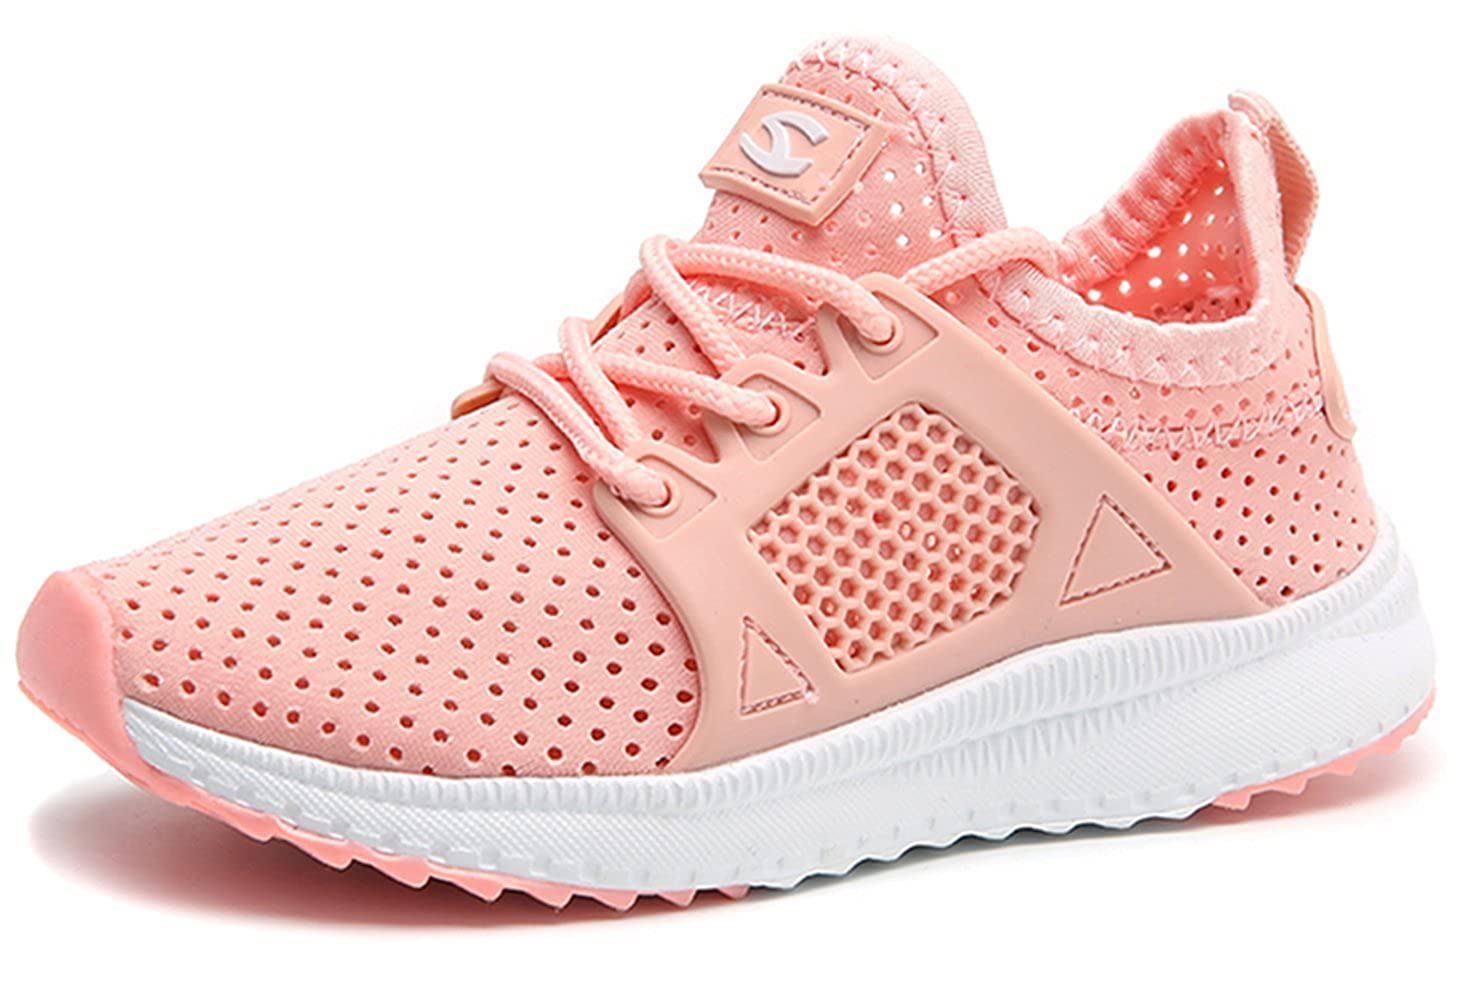 3c5b79616852 Soft Inner Lining with Nice Cushioned Footbed. Great Kids Anti-slip  Sneaker. Fashion Boy Running Shoes with Slip-on Wearing Style